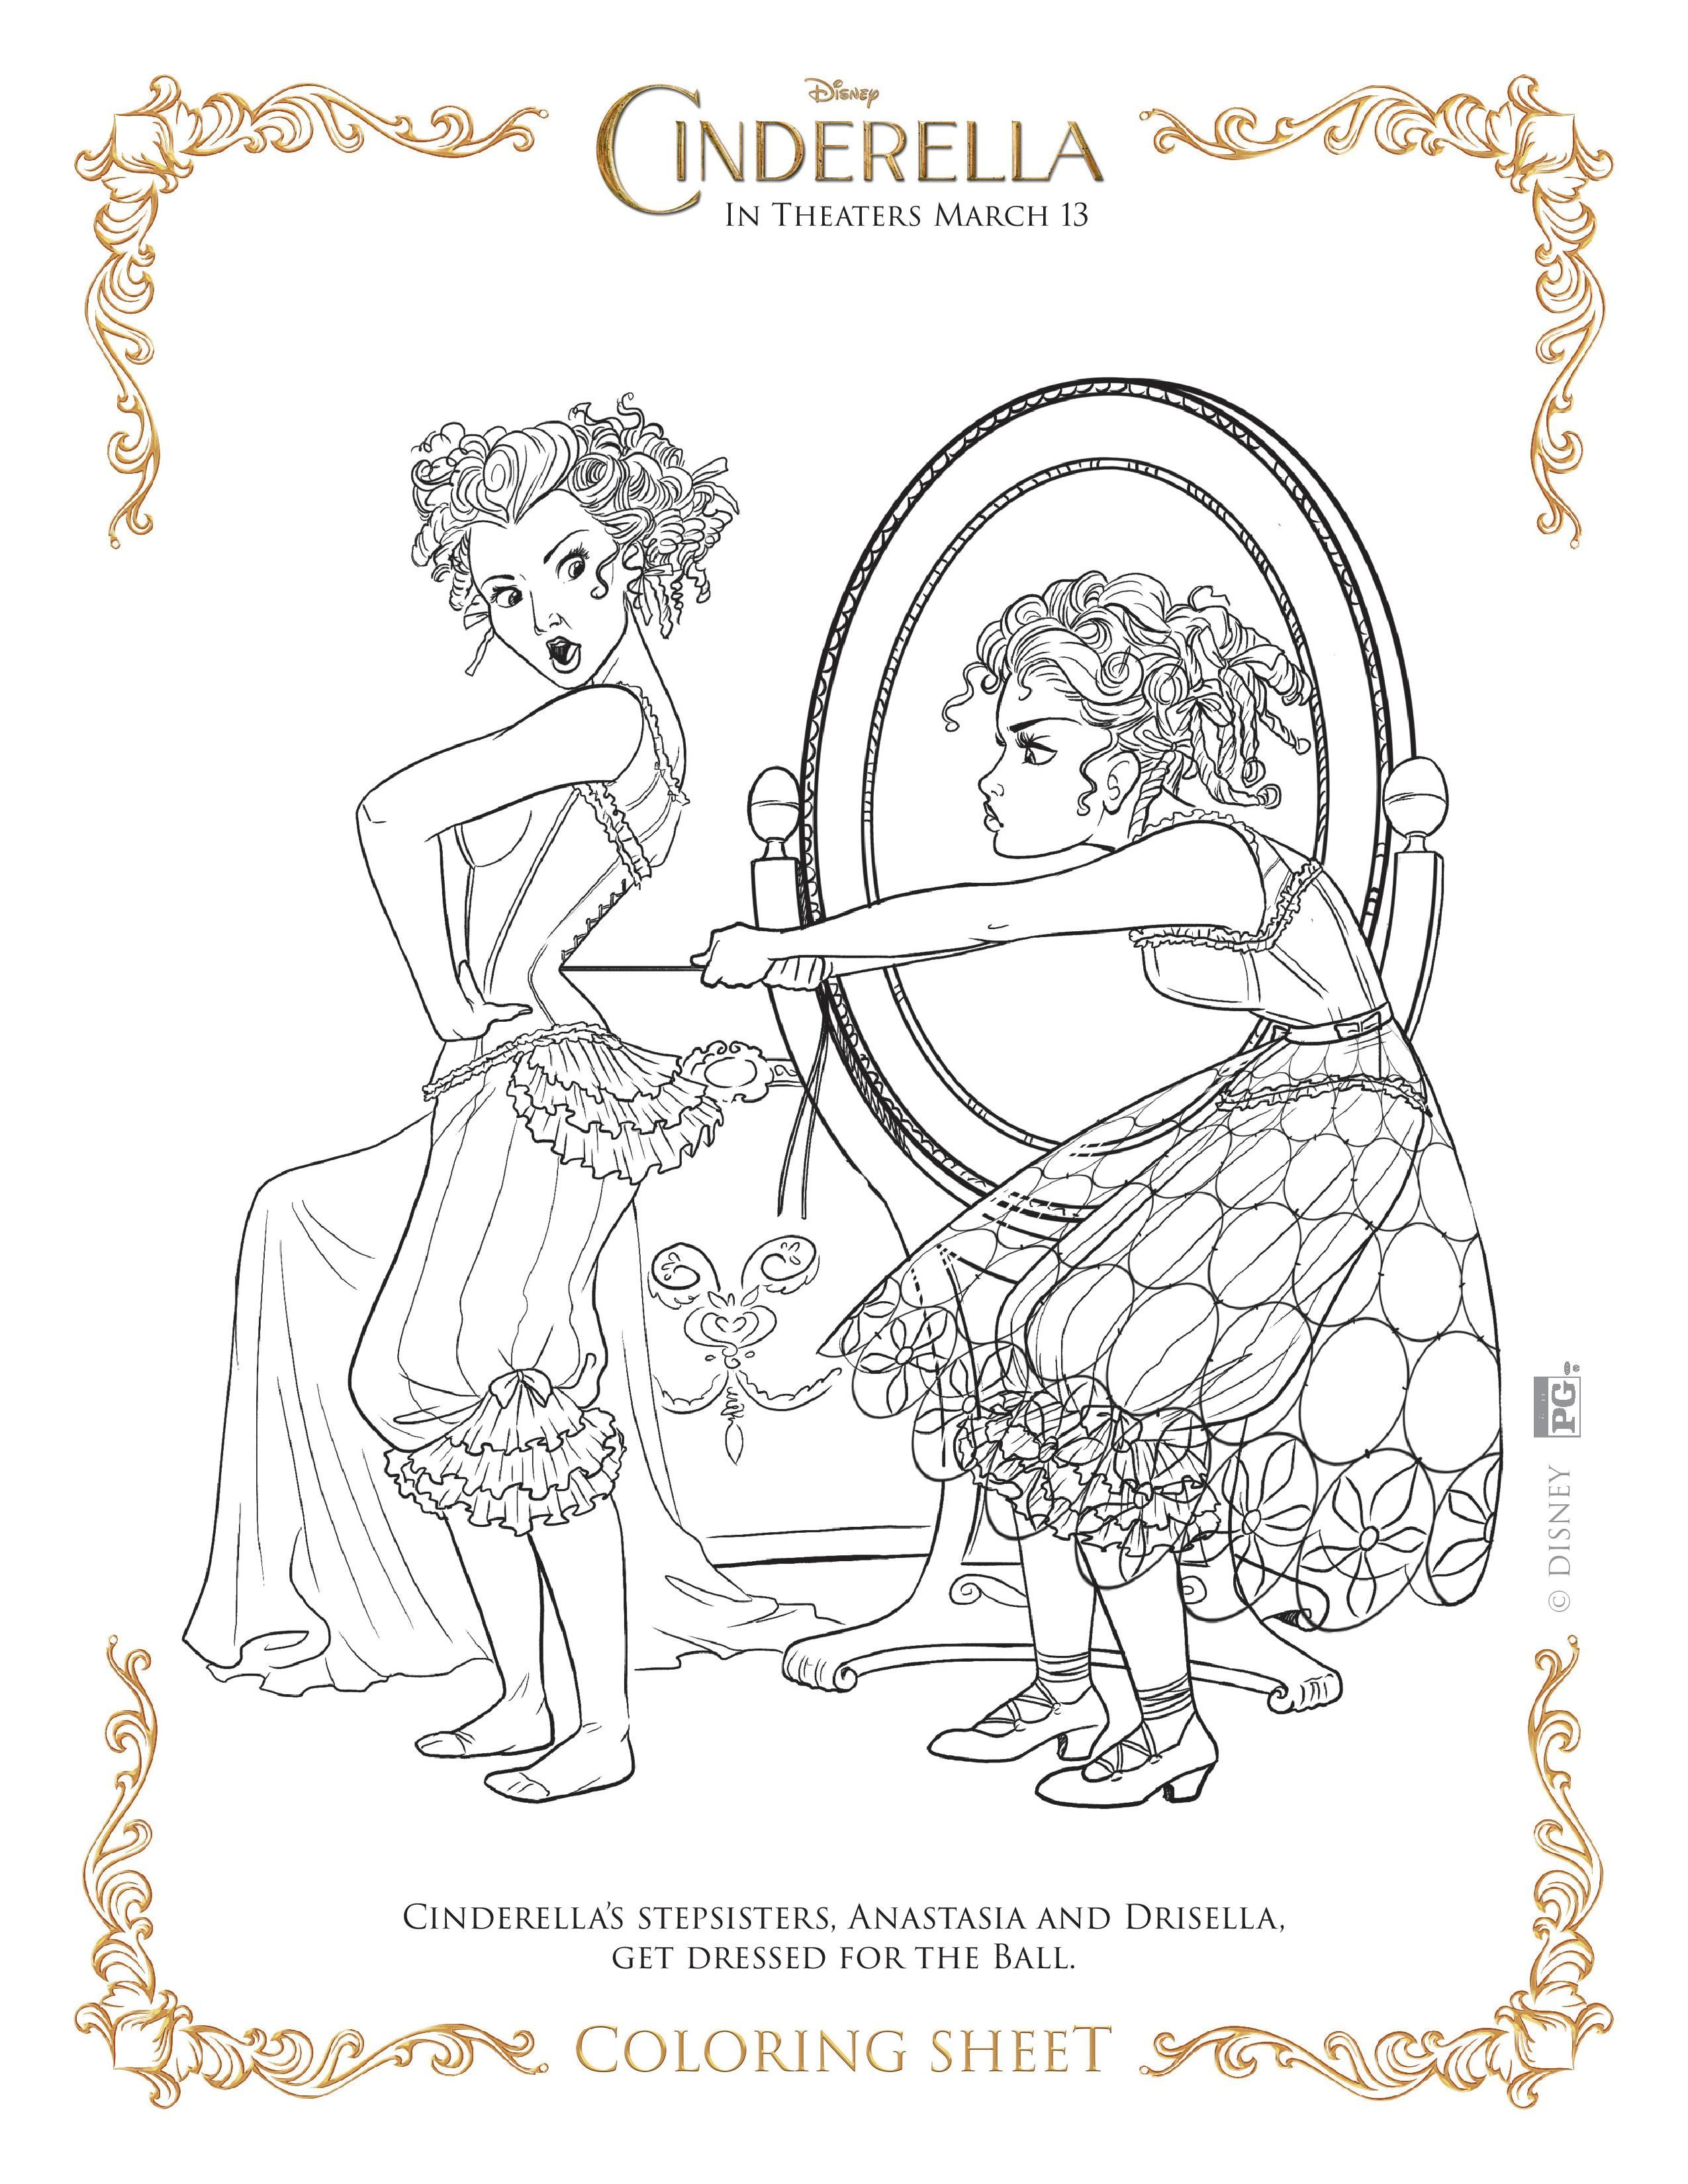 new disneys cinderella coloring pages and activity sheets - Cinderella Coloring Pages Kids